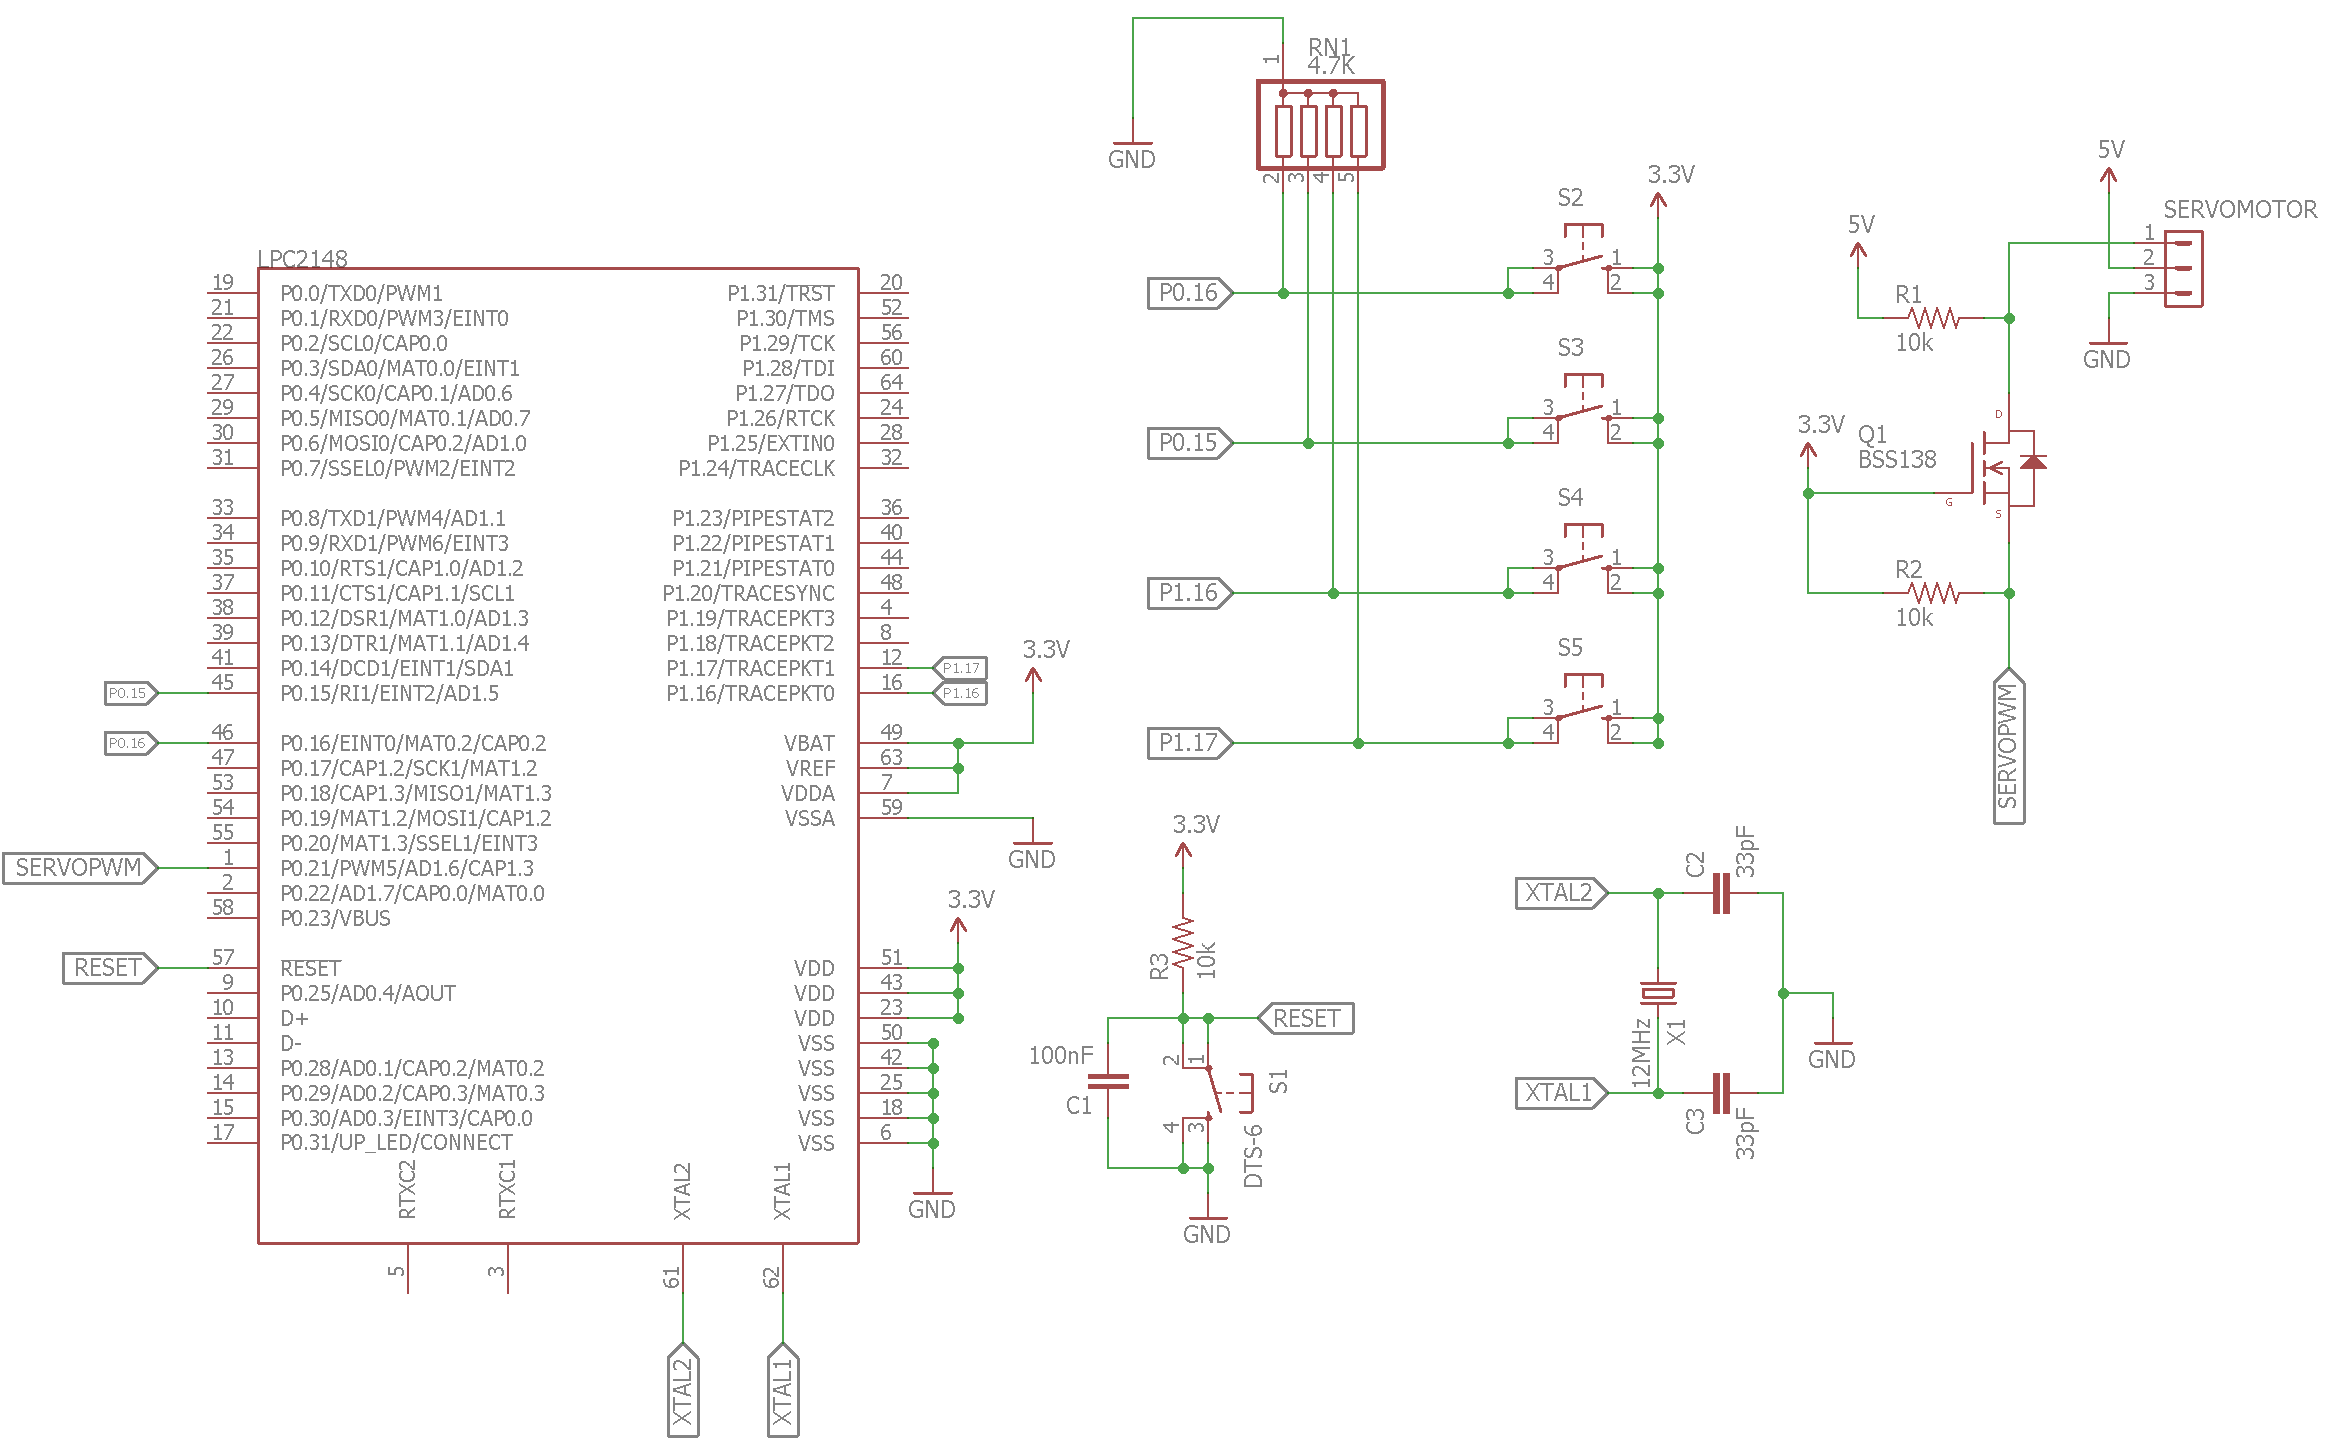 Interfacing A Servo Motor With Arm7 Lpc2148 Circuit Diagram Of 8051 Development Board Control